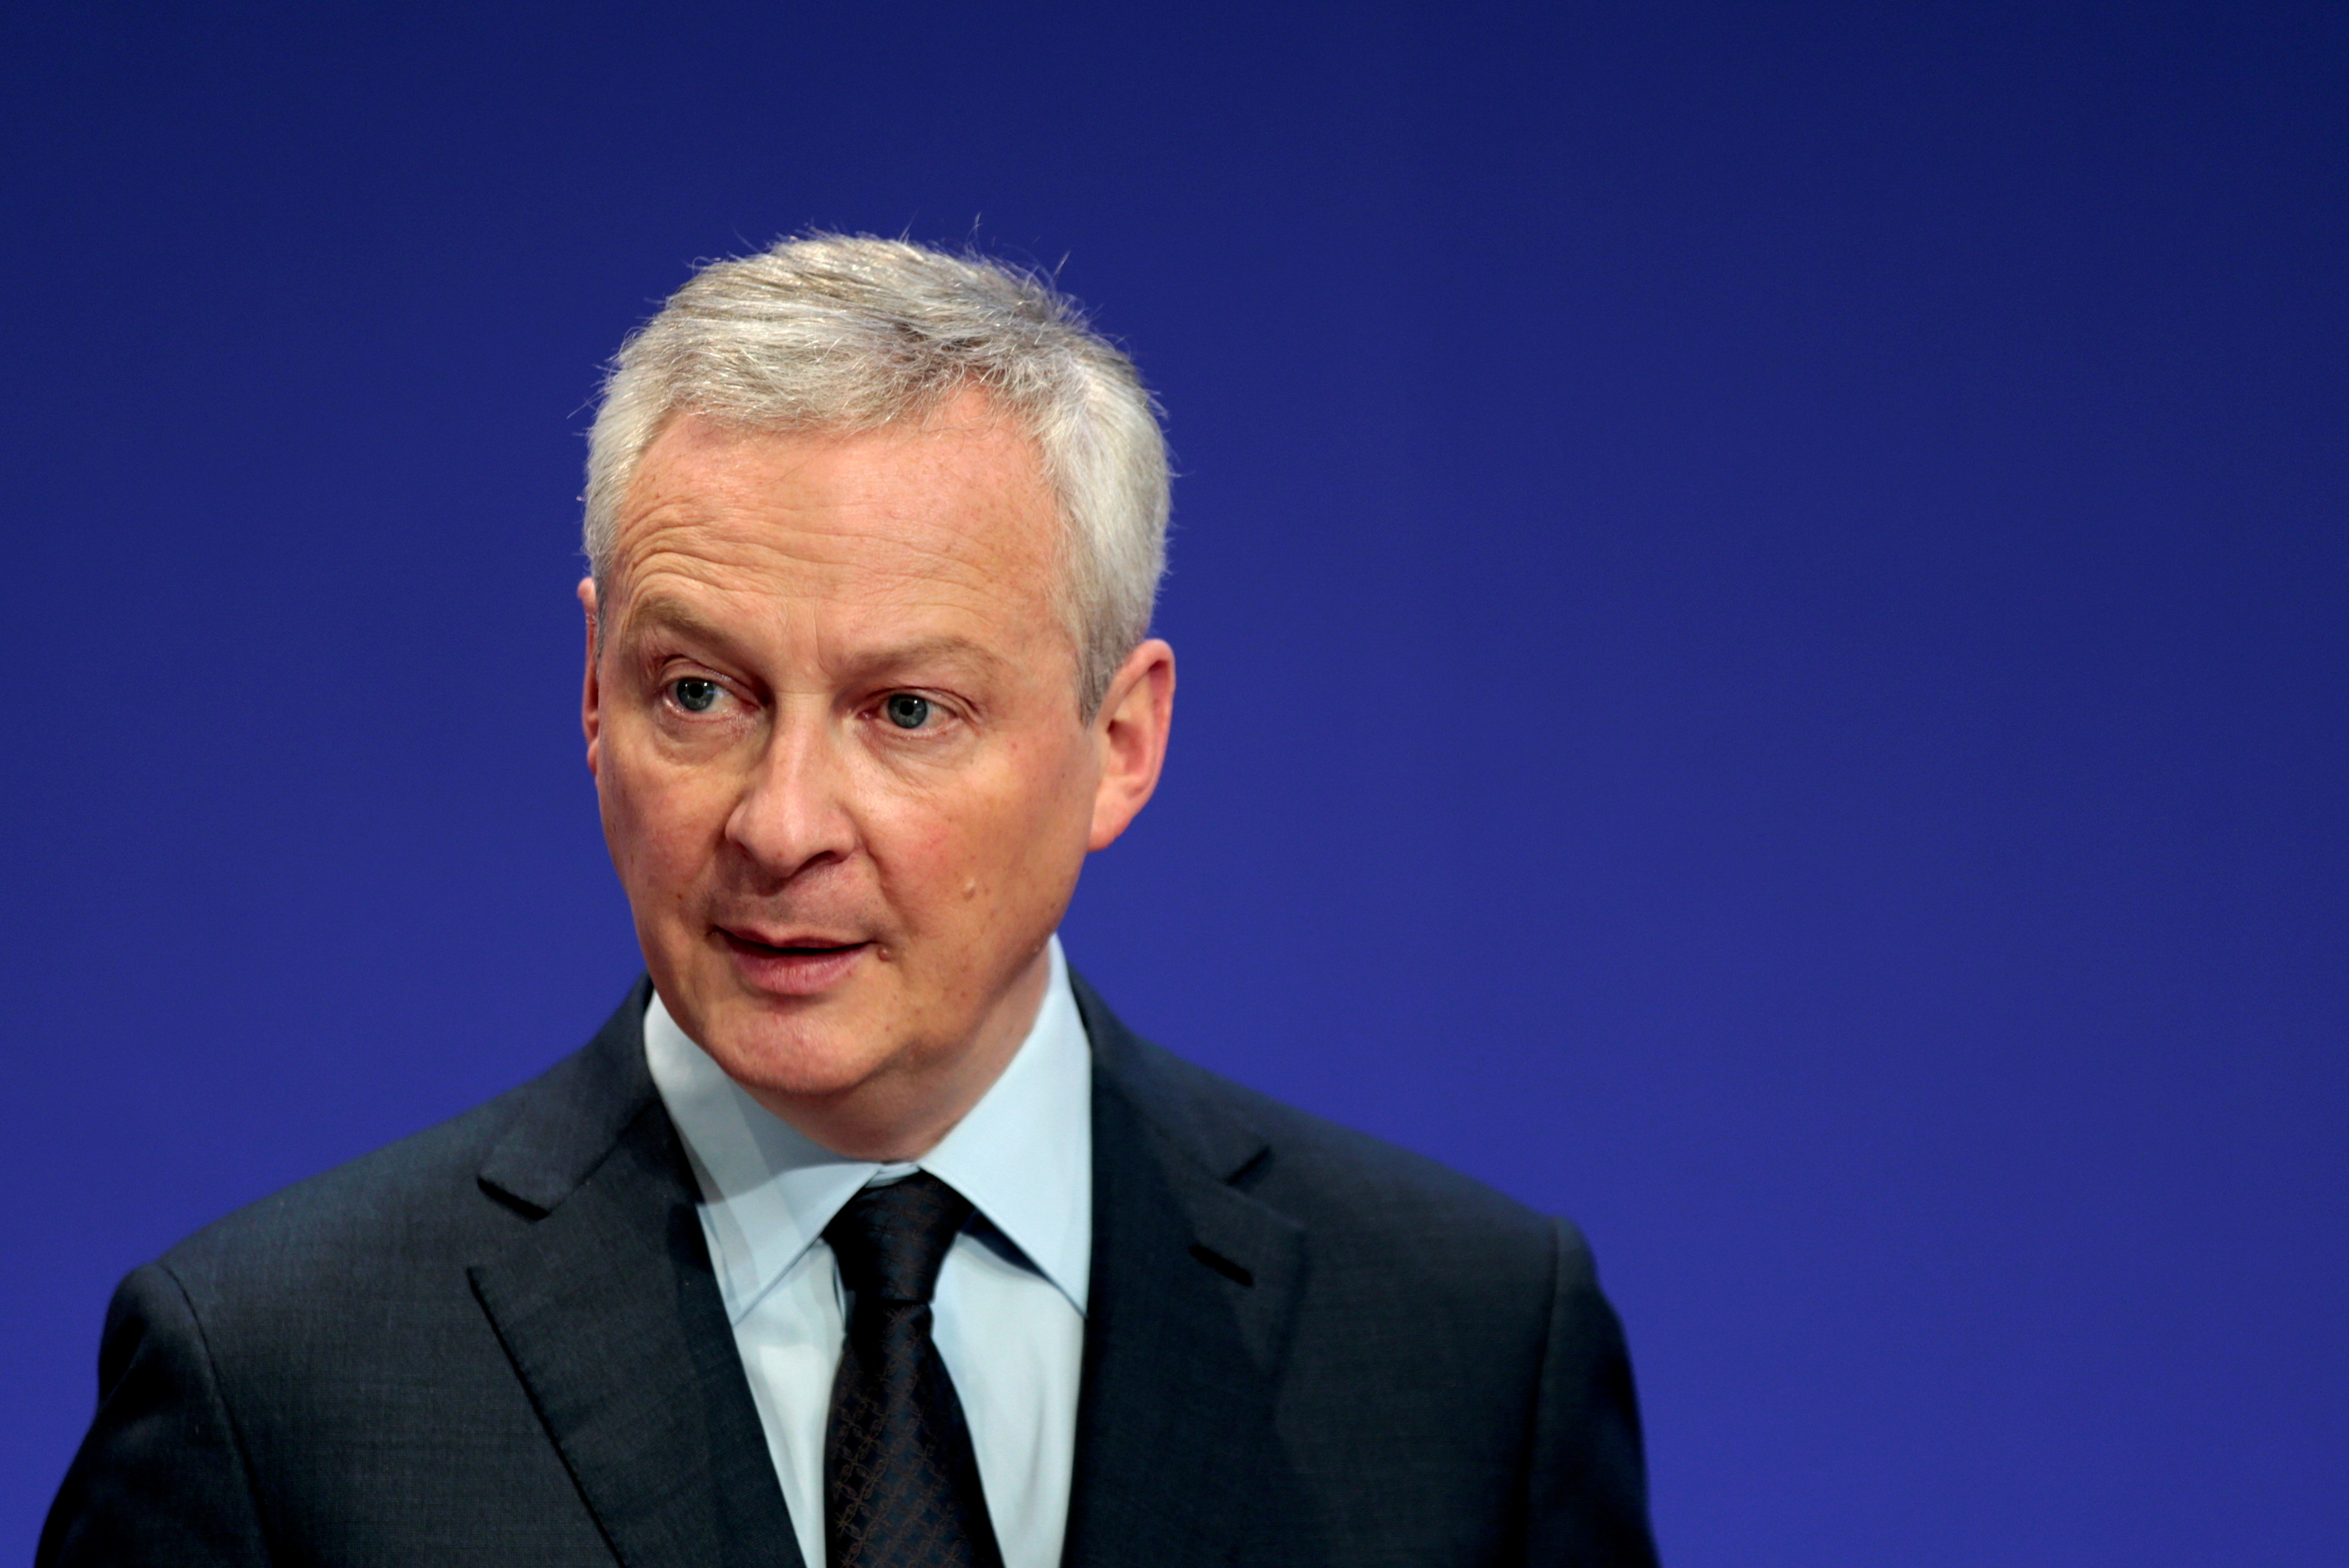 French Economy and Finance Minister Bruno Le Maire attends a news conference for the launching of the 2020 income tax campaign at the Bercy Finance Ministry in Paris, France, April 8, 2021. REUTERS/Sarah Meyssonnier/File Photo